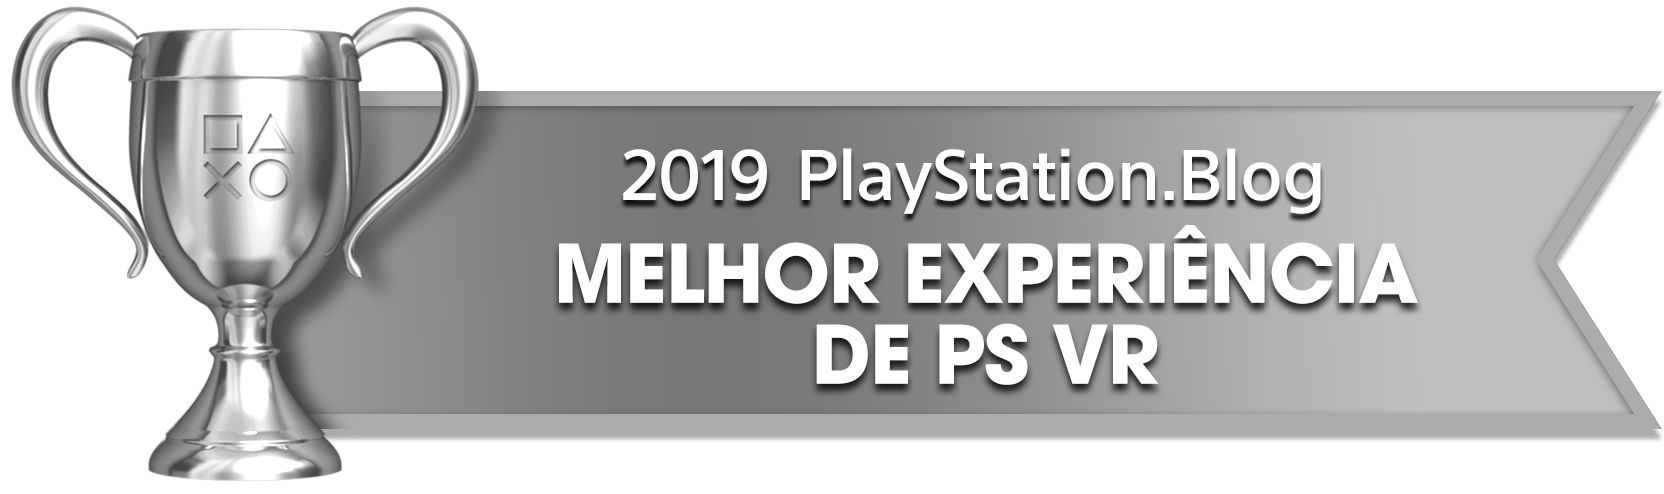 PS Blog Game of the Year 2019 - Best PS VR Experience - 3 - Silver